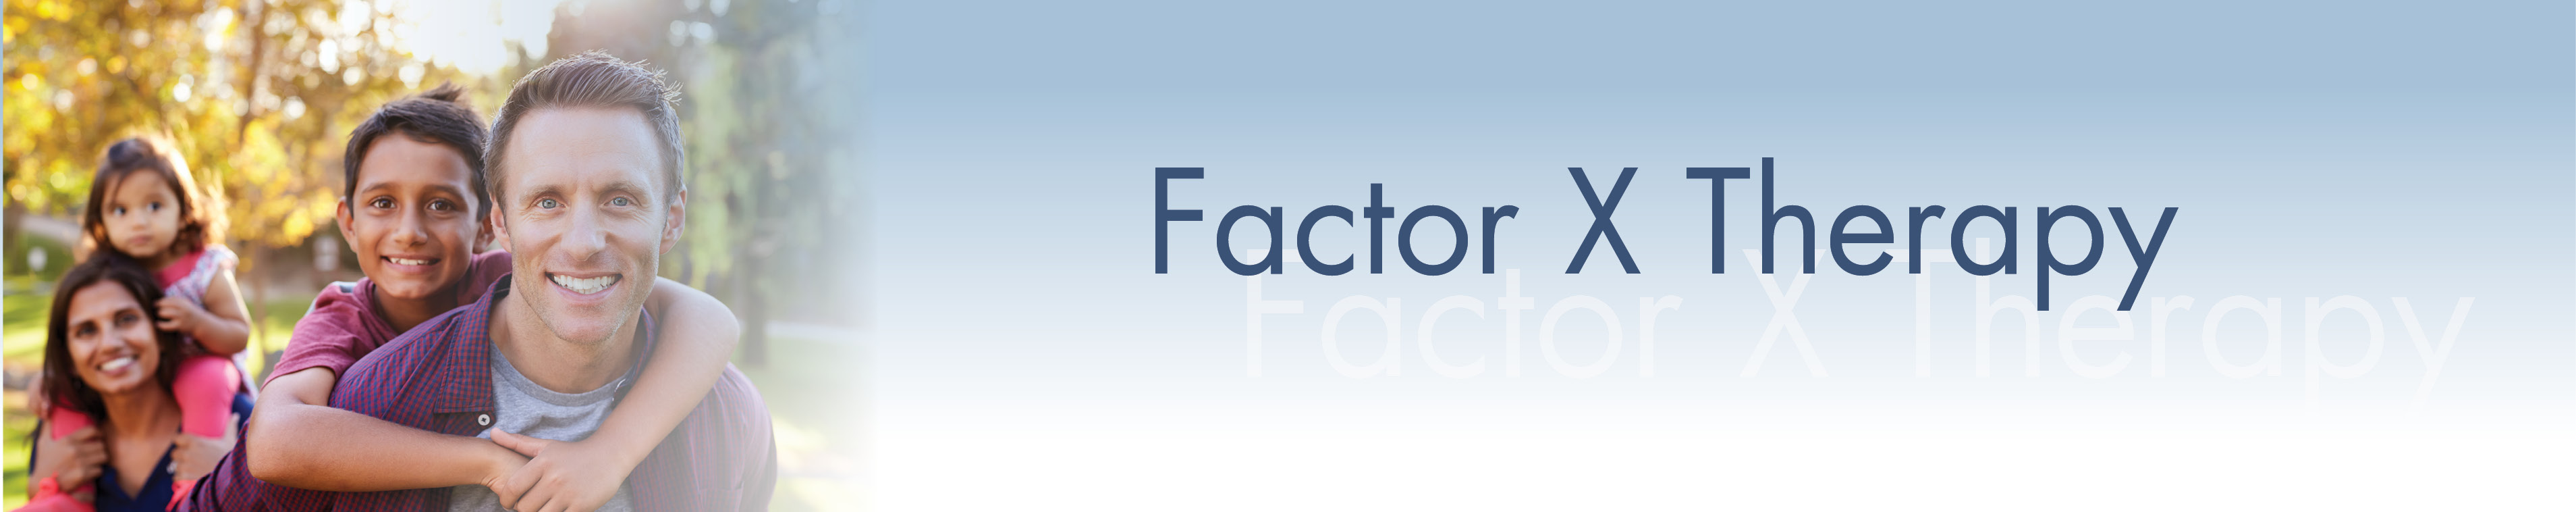 Factor-X Therapy